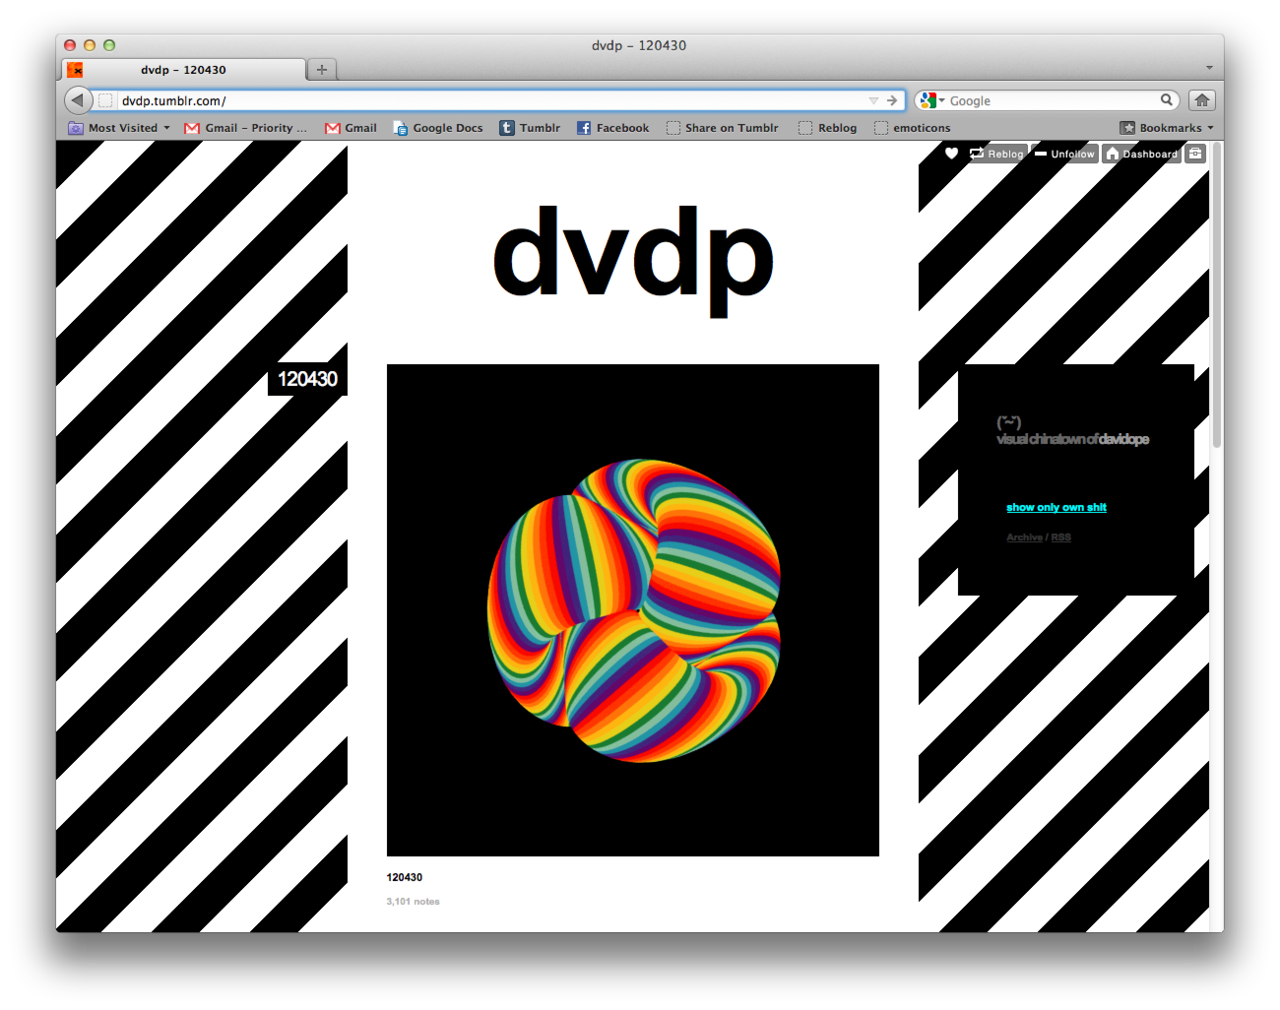 dvdp.tumblr.com by David Dope GIFs were reborn on Tumblr because of artists like David Dope. Constnatly stretches the medium. If there were ever a perfect medium for Tumblr, the GIF would be it.